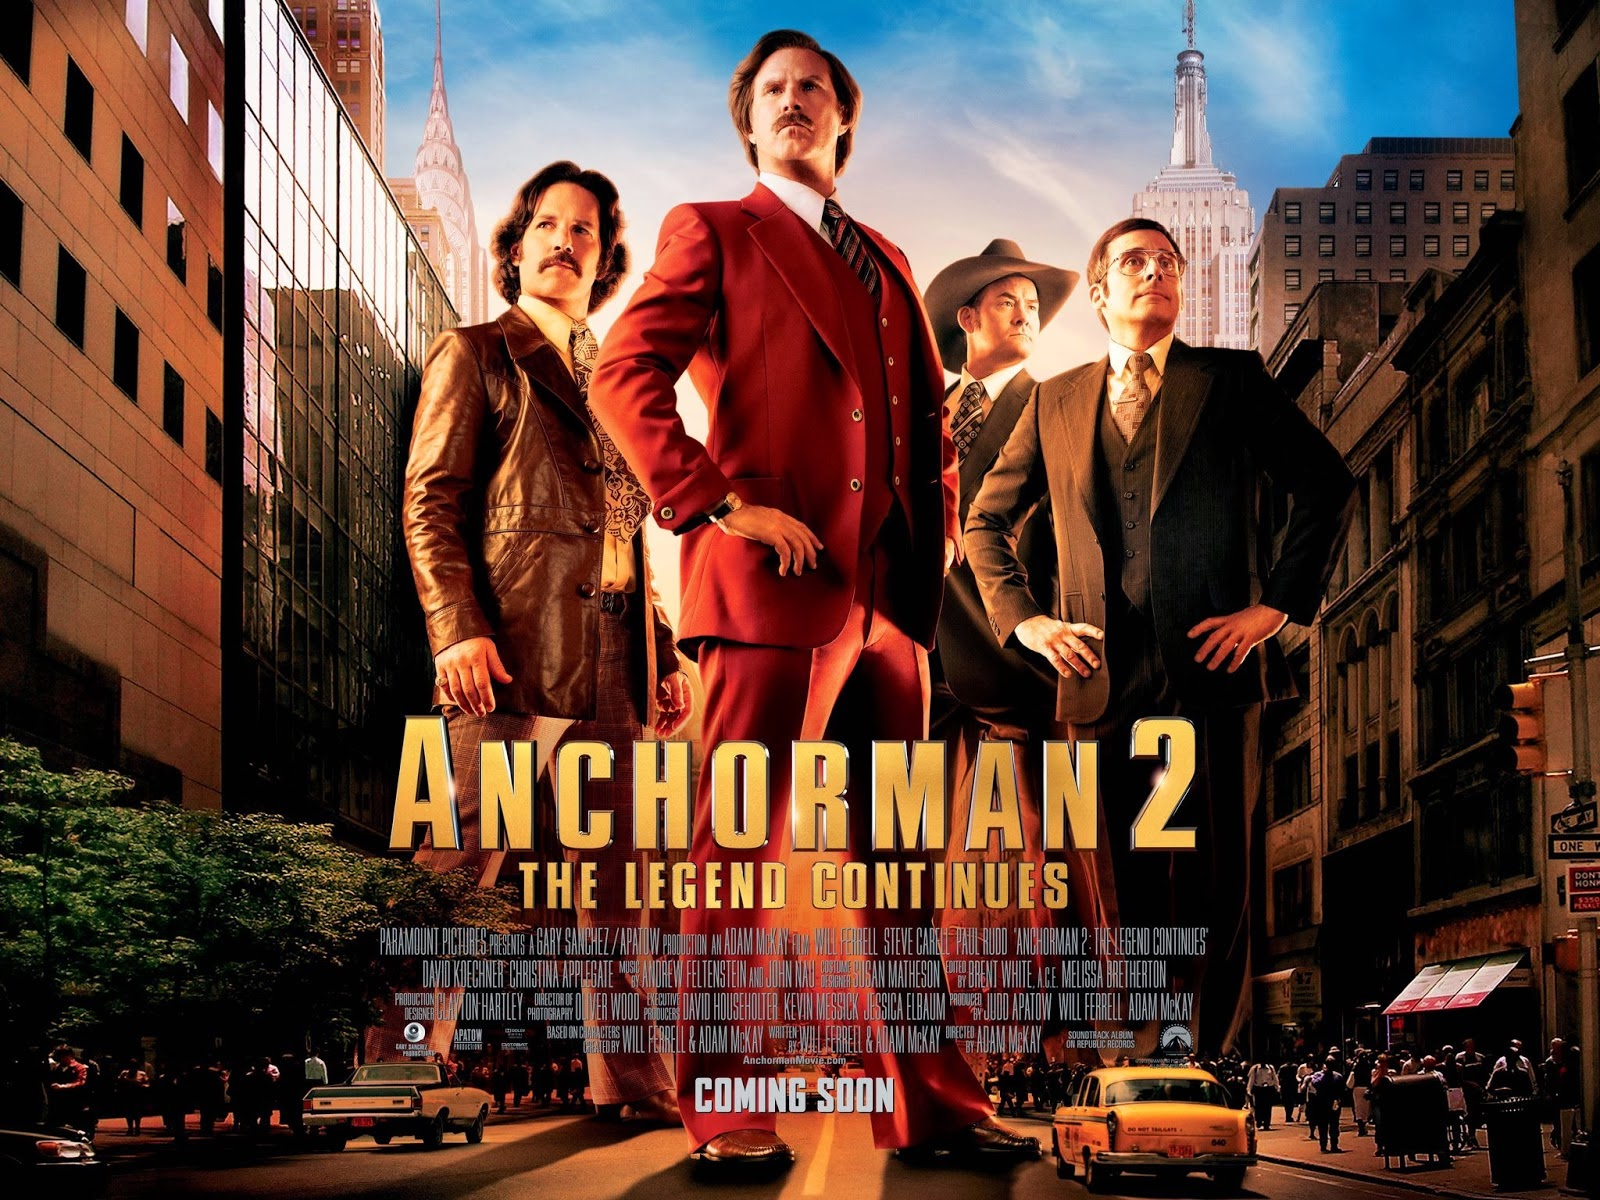 Download Anchorman 2: The Legend Continues (2013) 720p